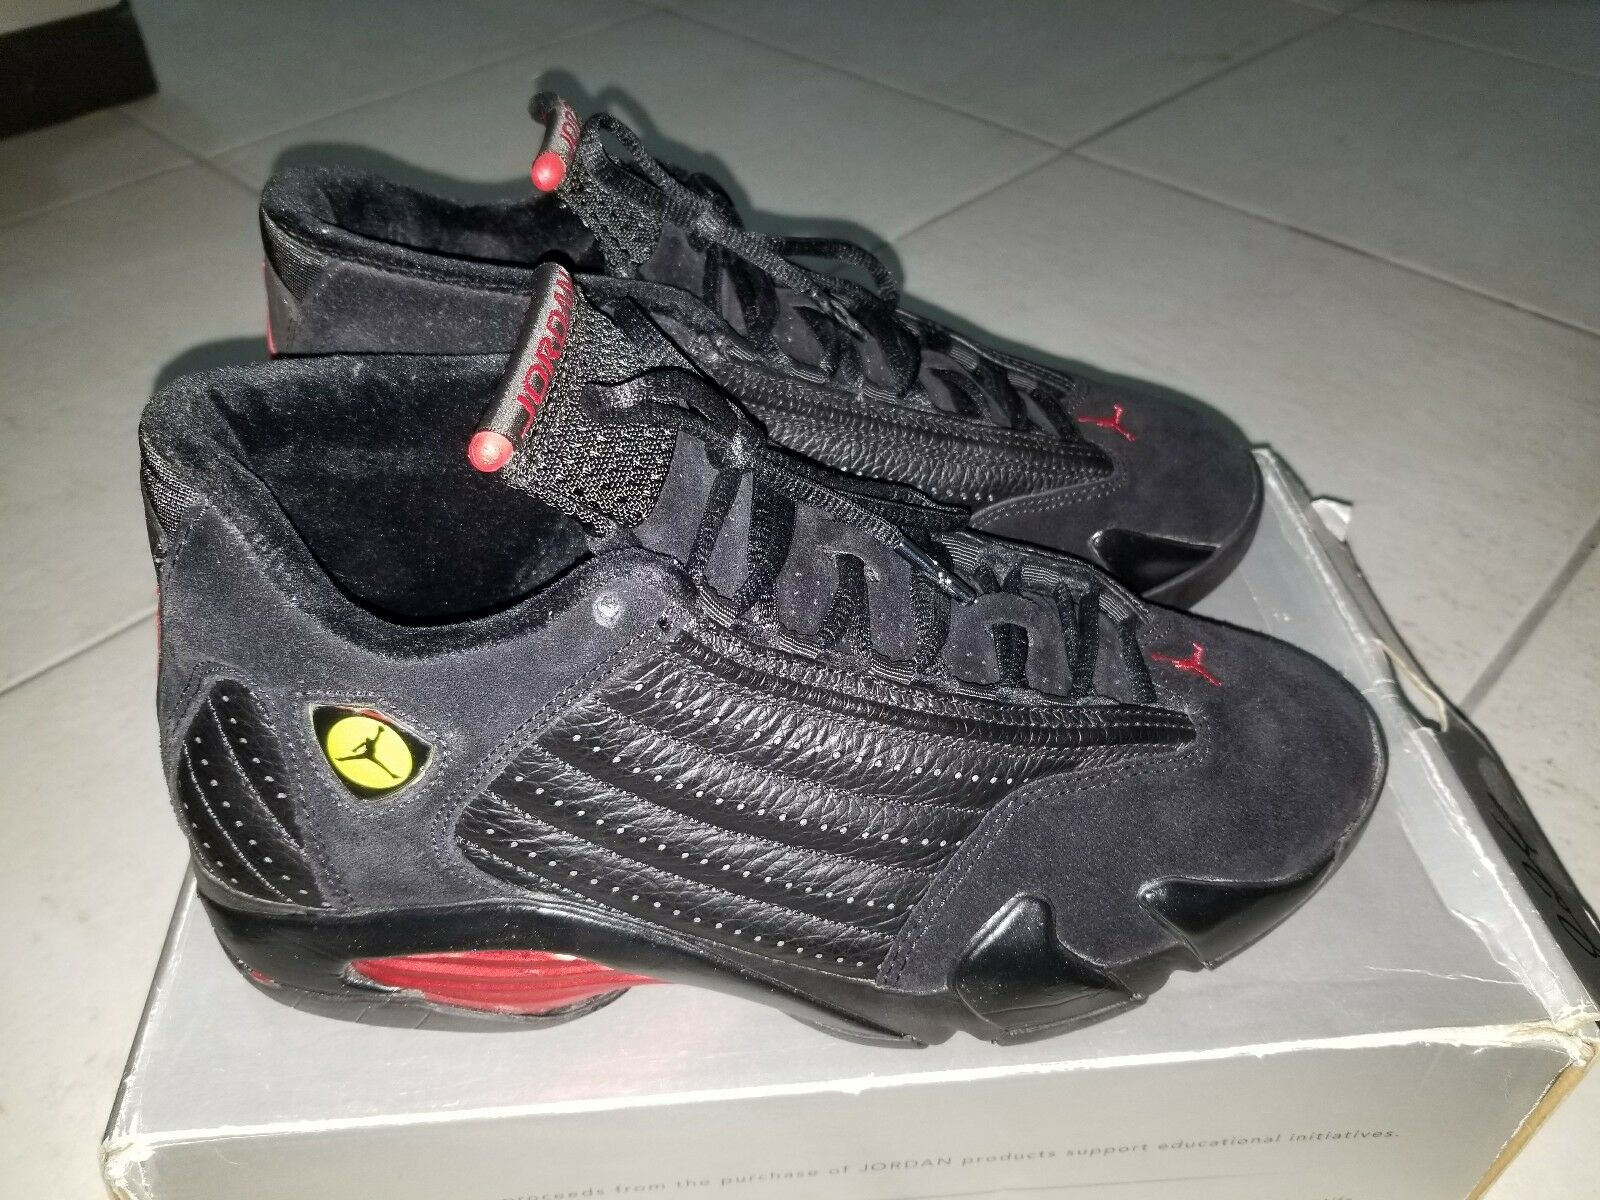 Nike Air Jordan 14 Red-Black Retro Black/Varsity Red-Black 14 311832 002 size  9 c5aed0